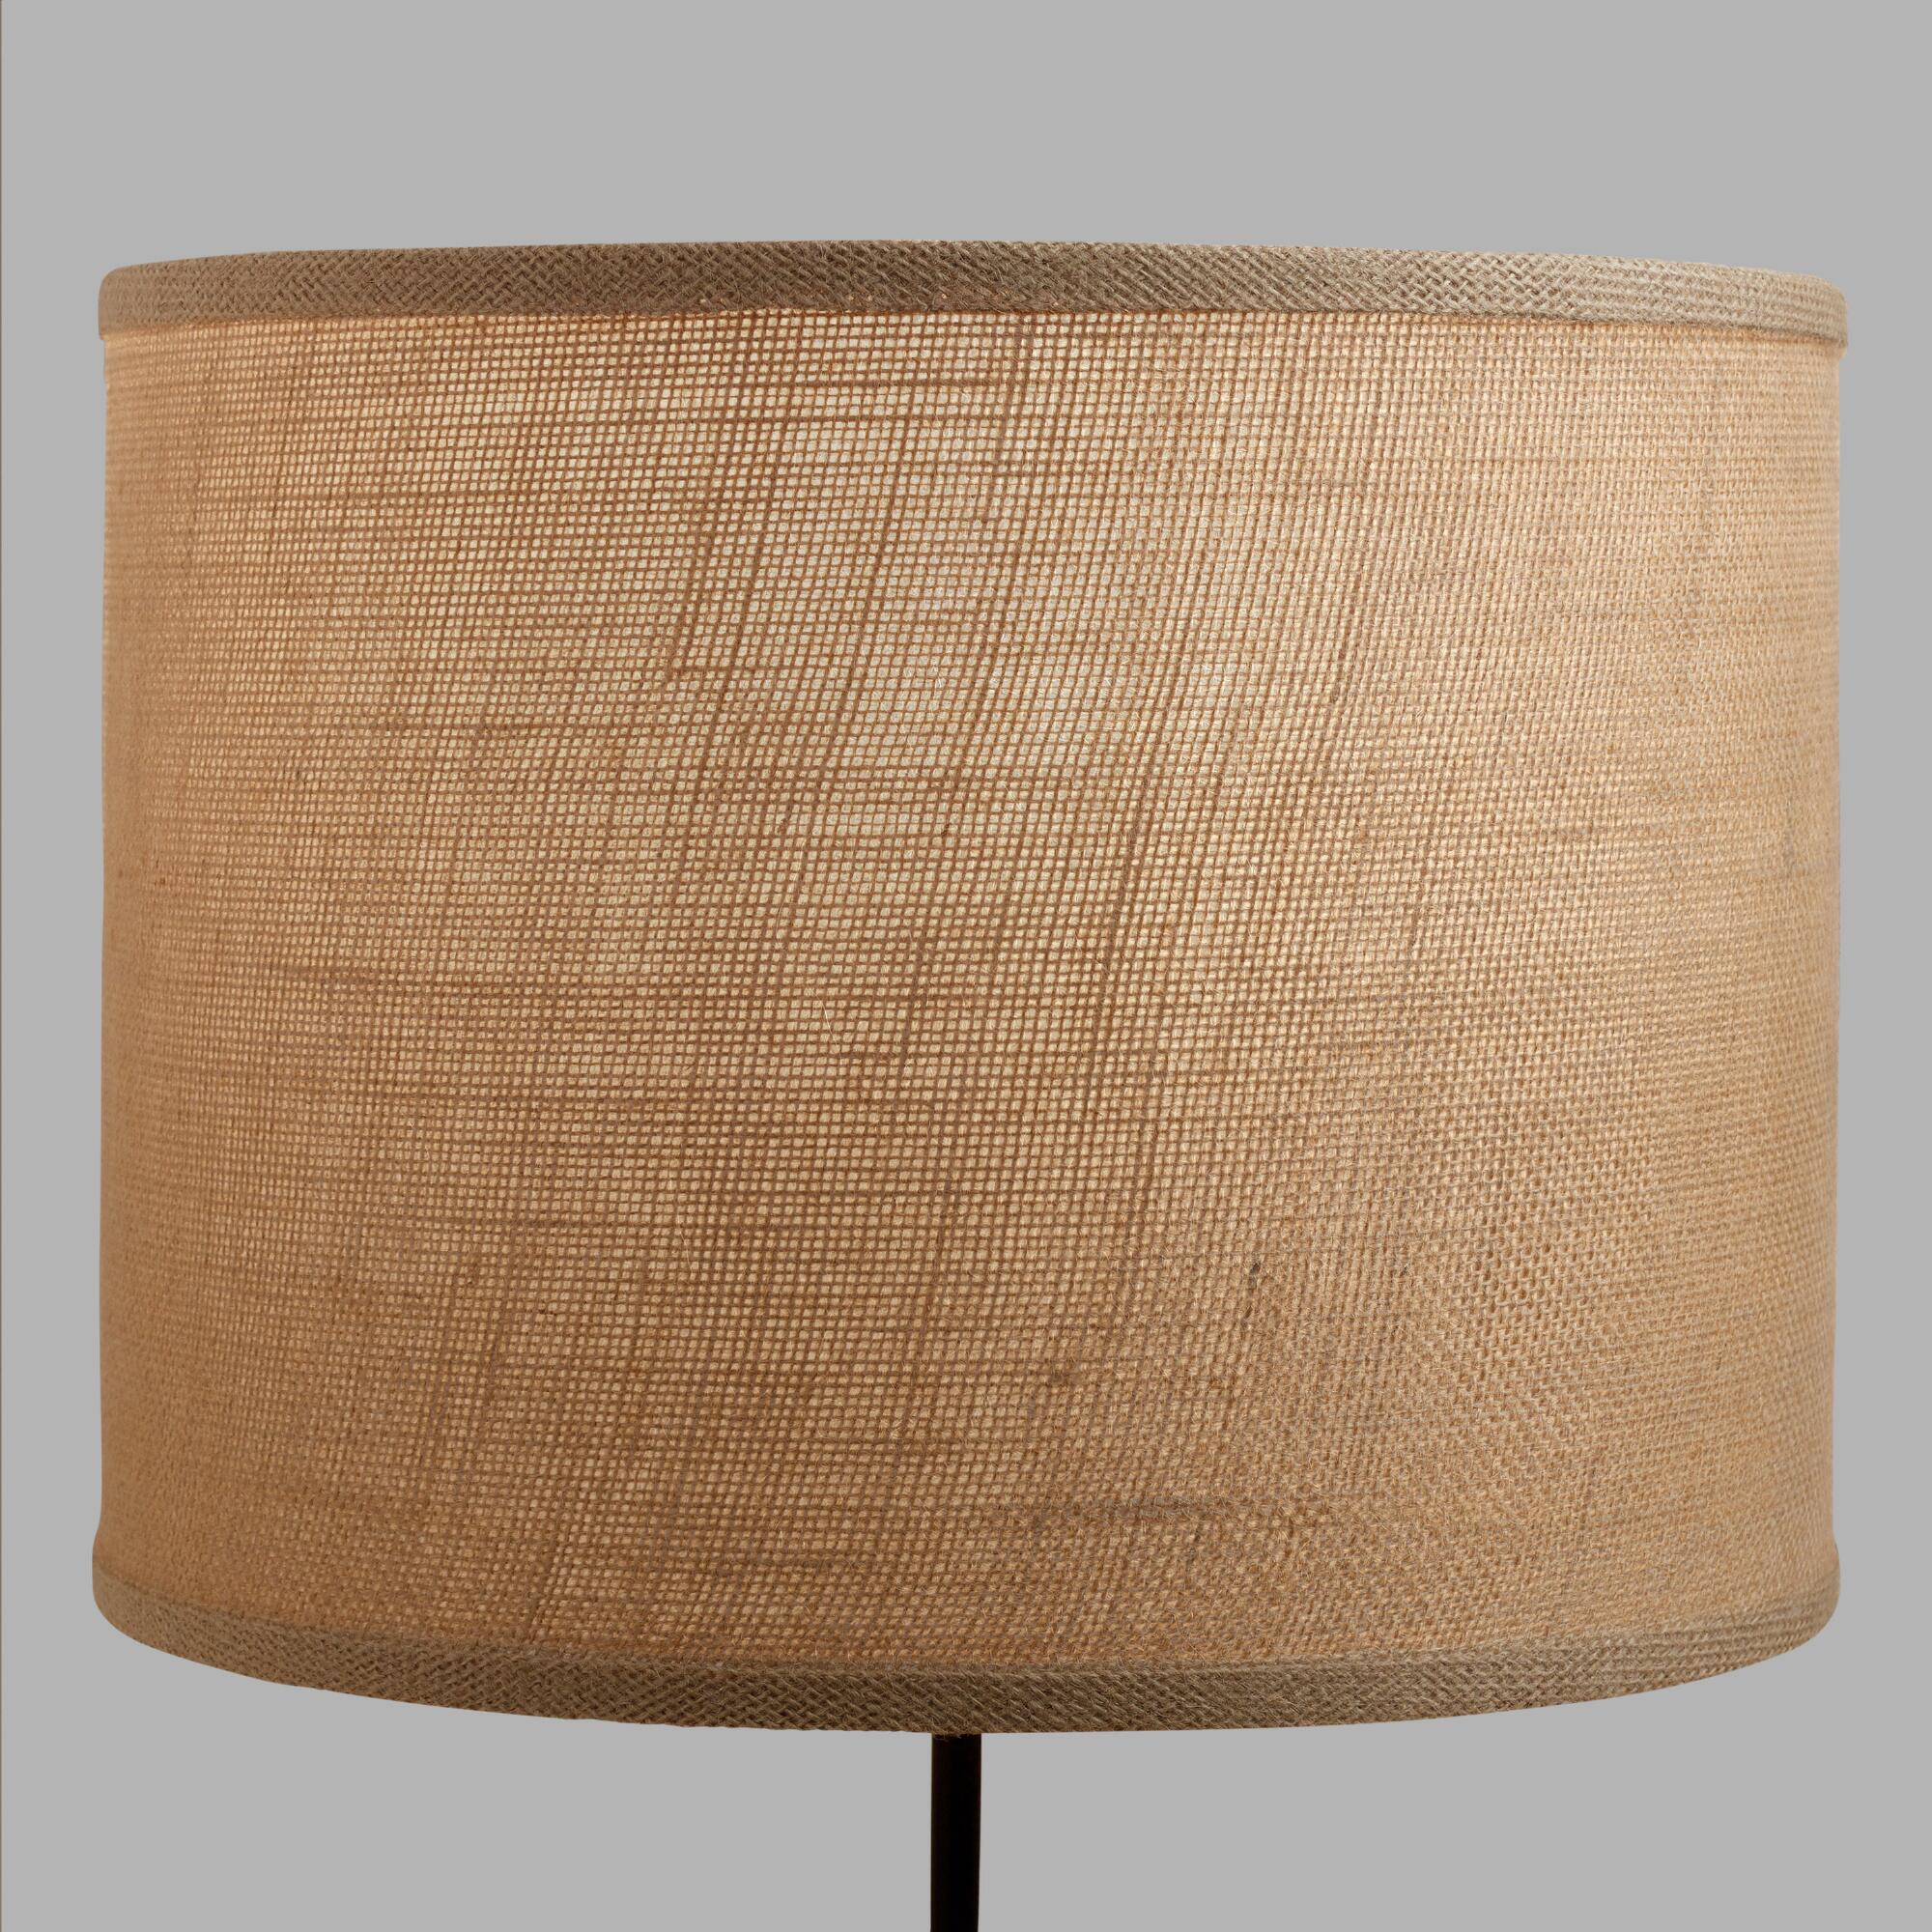 Natural Burlap Drum Table Lamp Shade - Natural Fiber by World Market